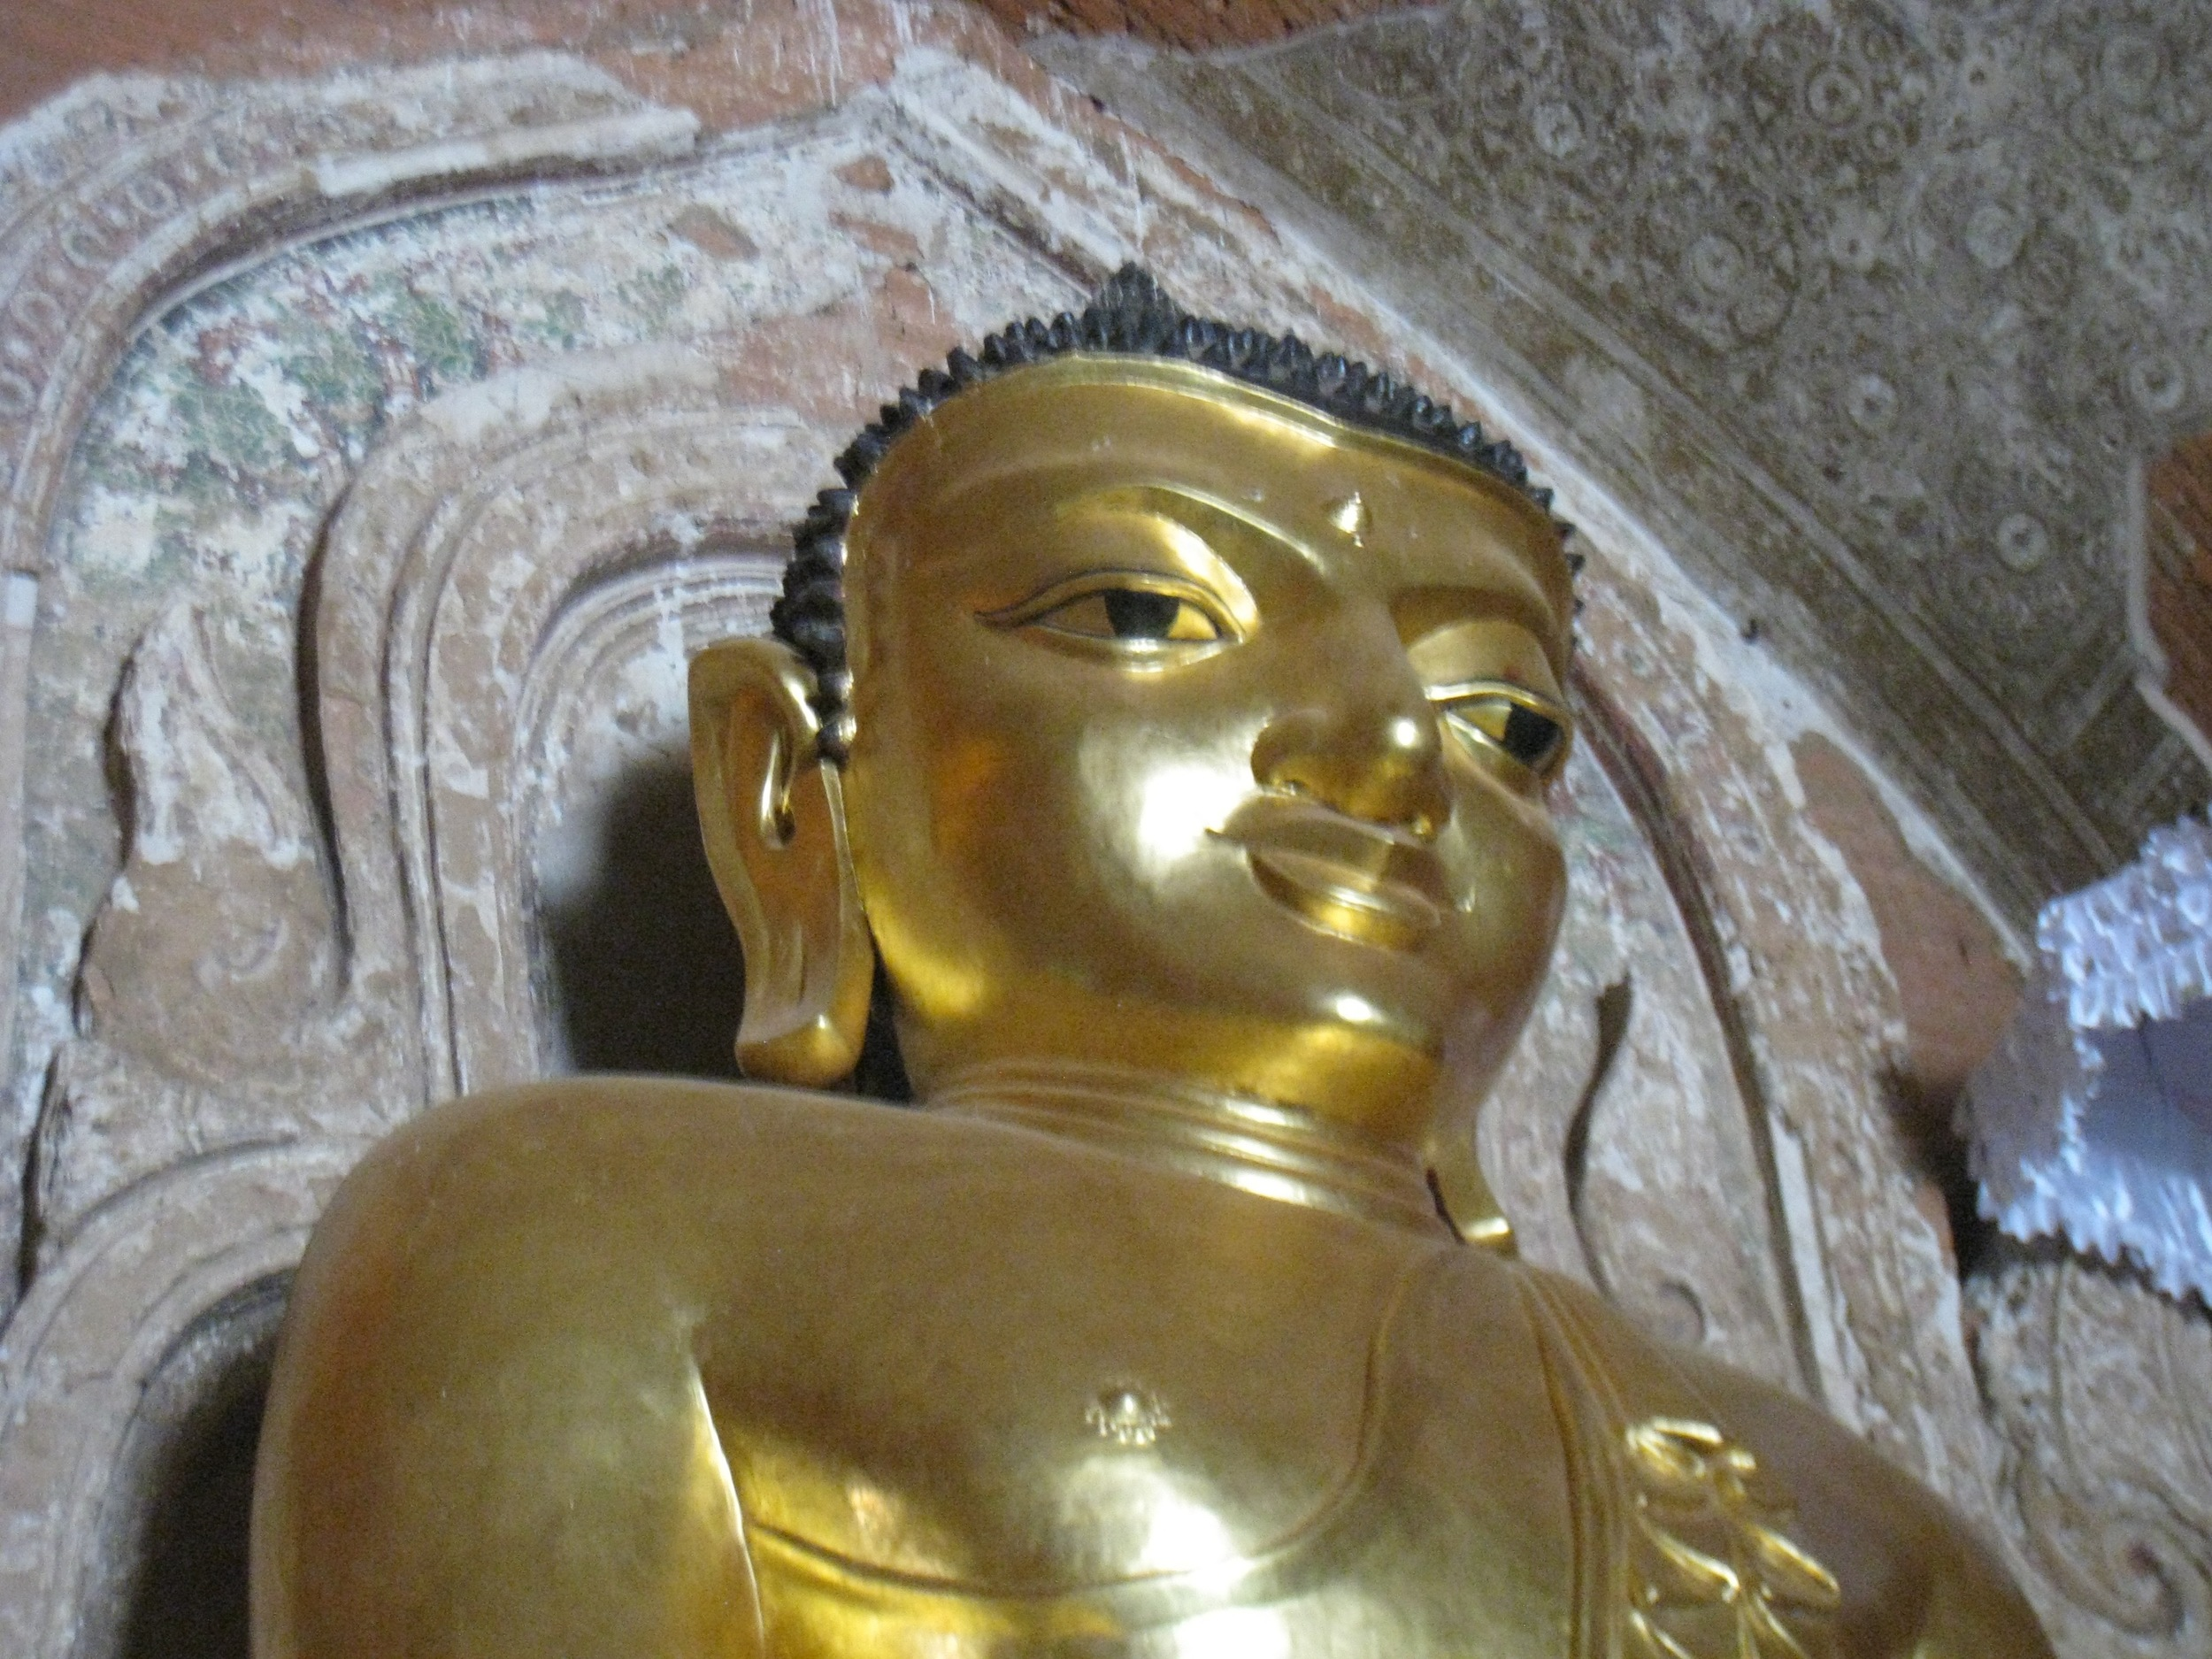 BUDDHISM IS THE PREVALENT RELIGION IN MYANMAR (BURMA)